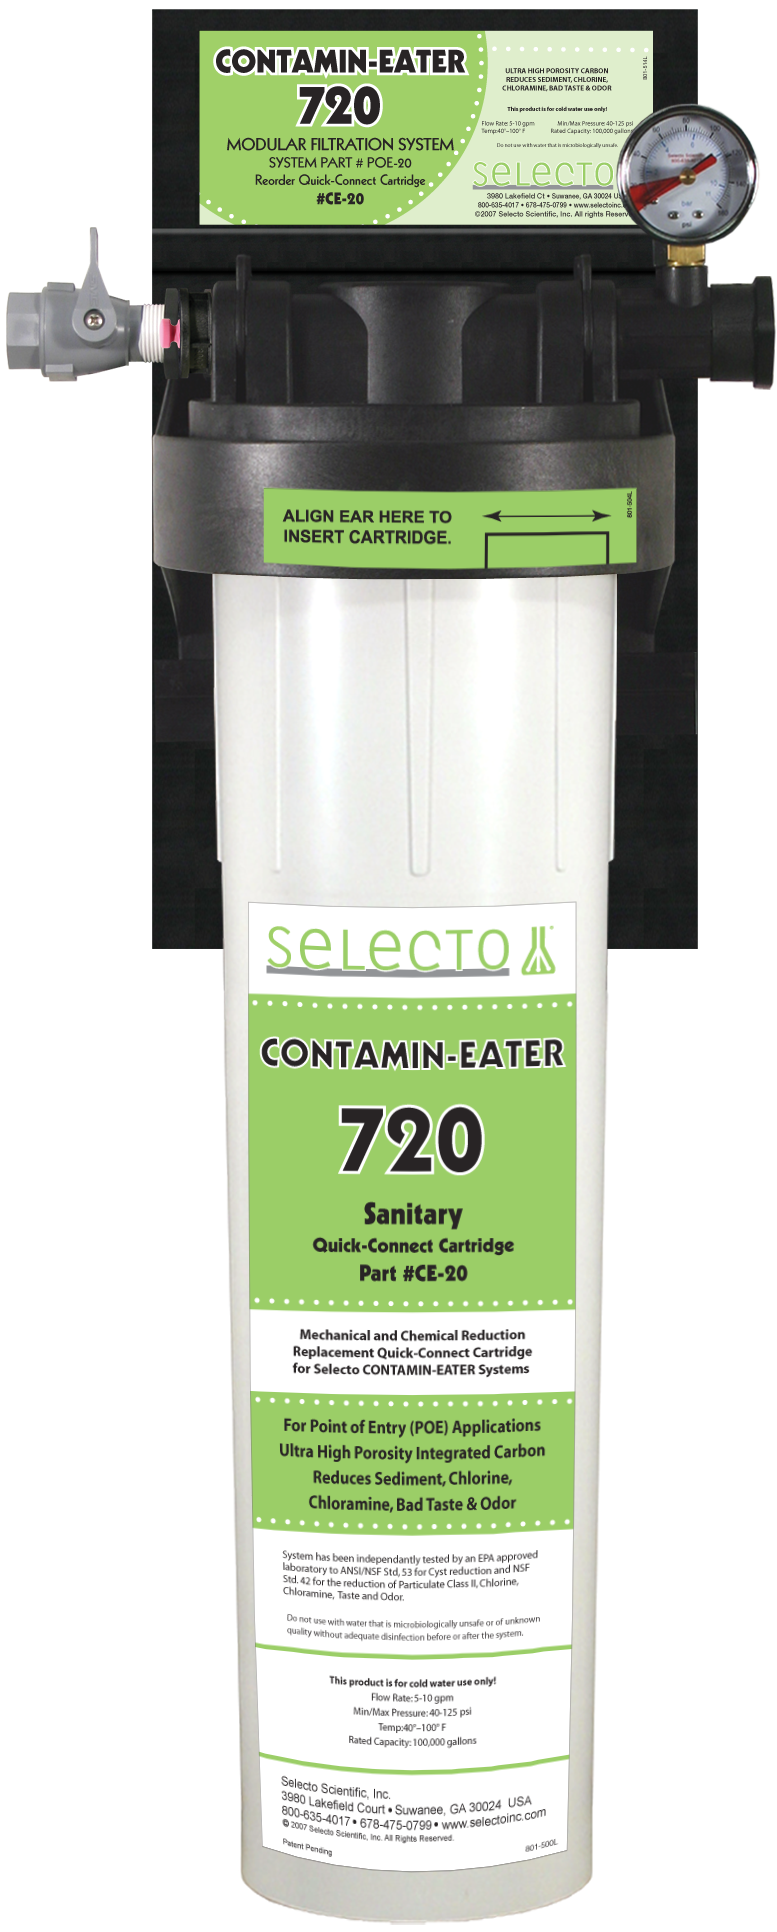 Contamin-Eater 720 Whole House Water Filter by Selecto Scientific